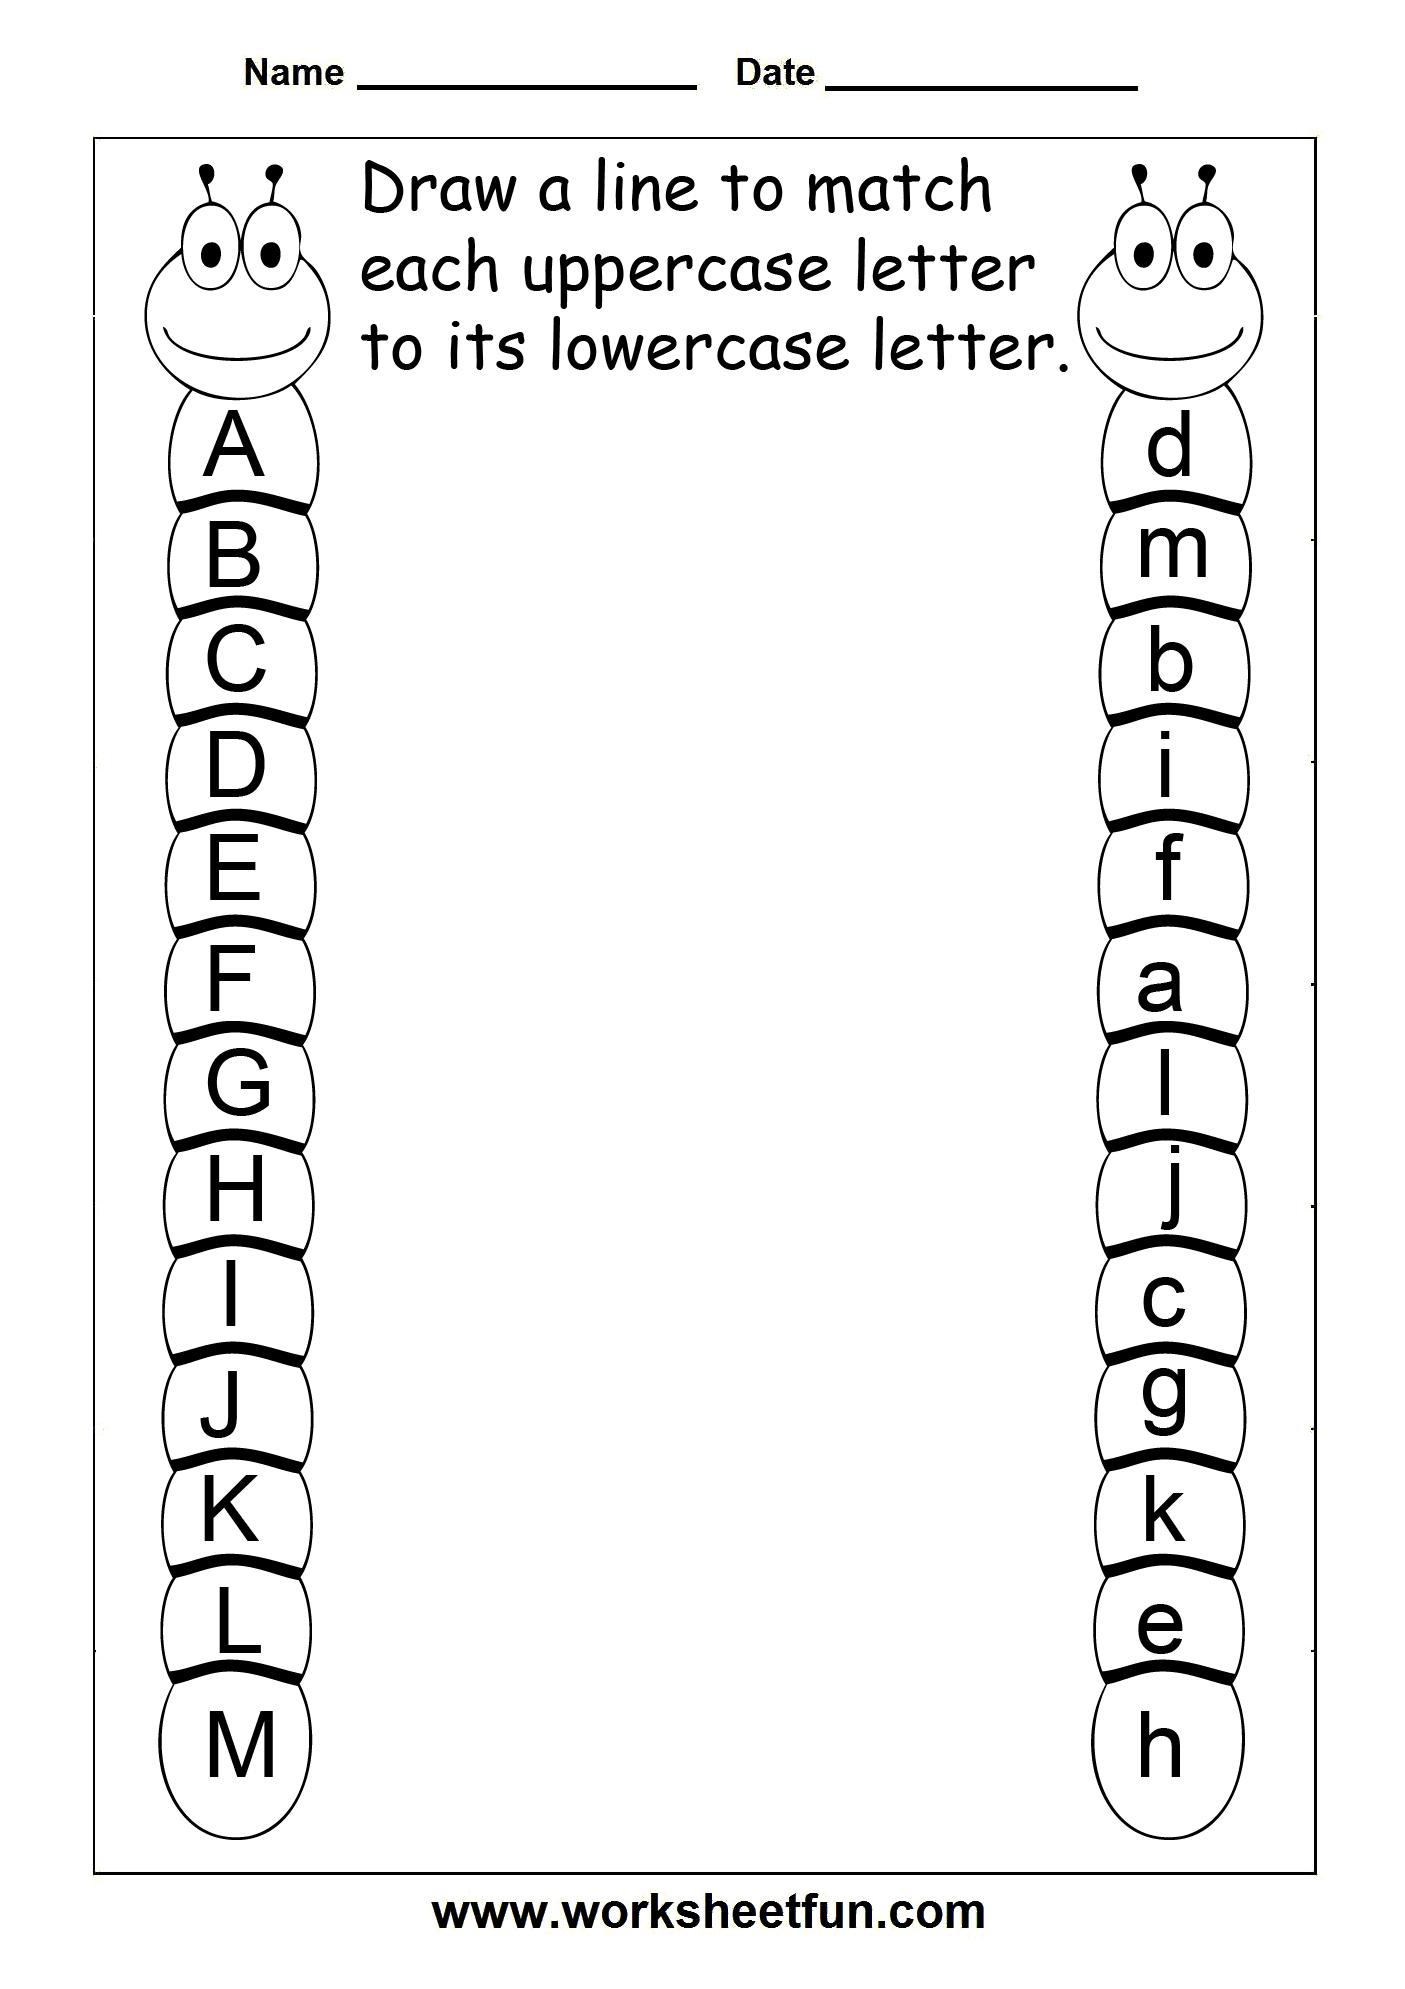 Weirdmailus  Fascinating  Images About Work Worksheet On Pinterest  Hidden Pictures  With Licious  Images About Work Worksheet On Pinterest  Hidden Pictures Color By Numbers And Puzzles With Astounding Angle Worksheets Ks Also Bedmas Worksheets Grade  In Addition Worksheet For Class  And Letters For Kindergarten Worksheets As Well As Sample Handwriting Worksheets Additionally Ch Phonics Worksheets Free From Pinterestcom With Weirdmailus  Licious  Images About Work Worksheet On Pinterest  Hidden Pictures  With Astounding  Images About Work Worksheet On Pinterest  Hidden Pictures Color By Numbers And Puzzles And Fascinating Angle Worksheets Ks Also Bedmas Worksheets Grade  In Addition Worksheet For Class  From Pinterestcom